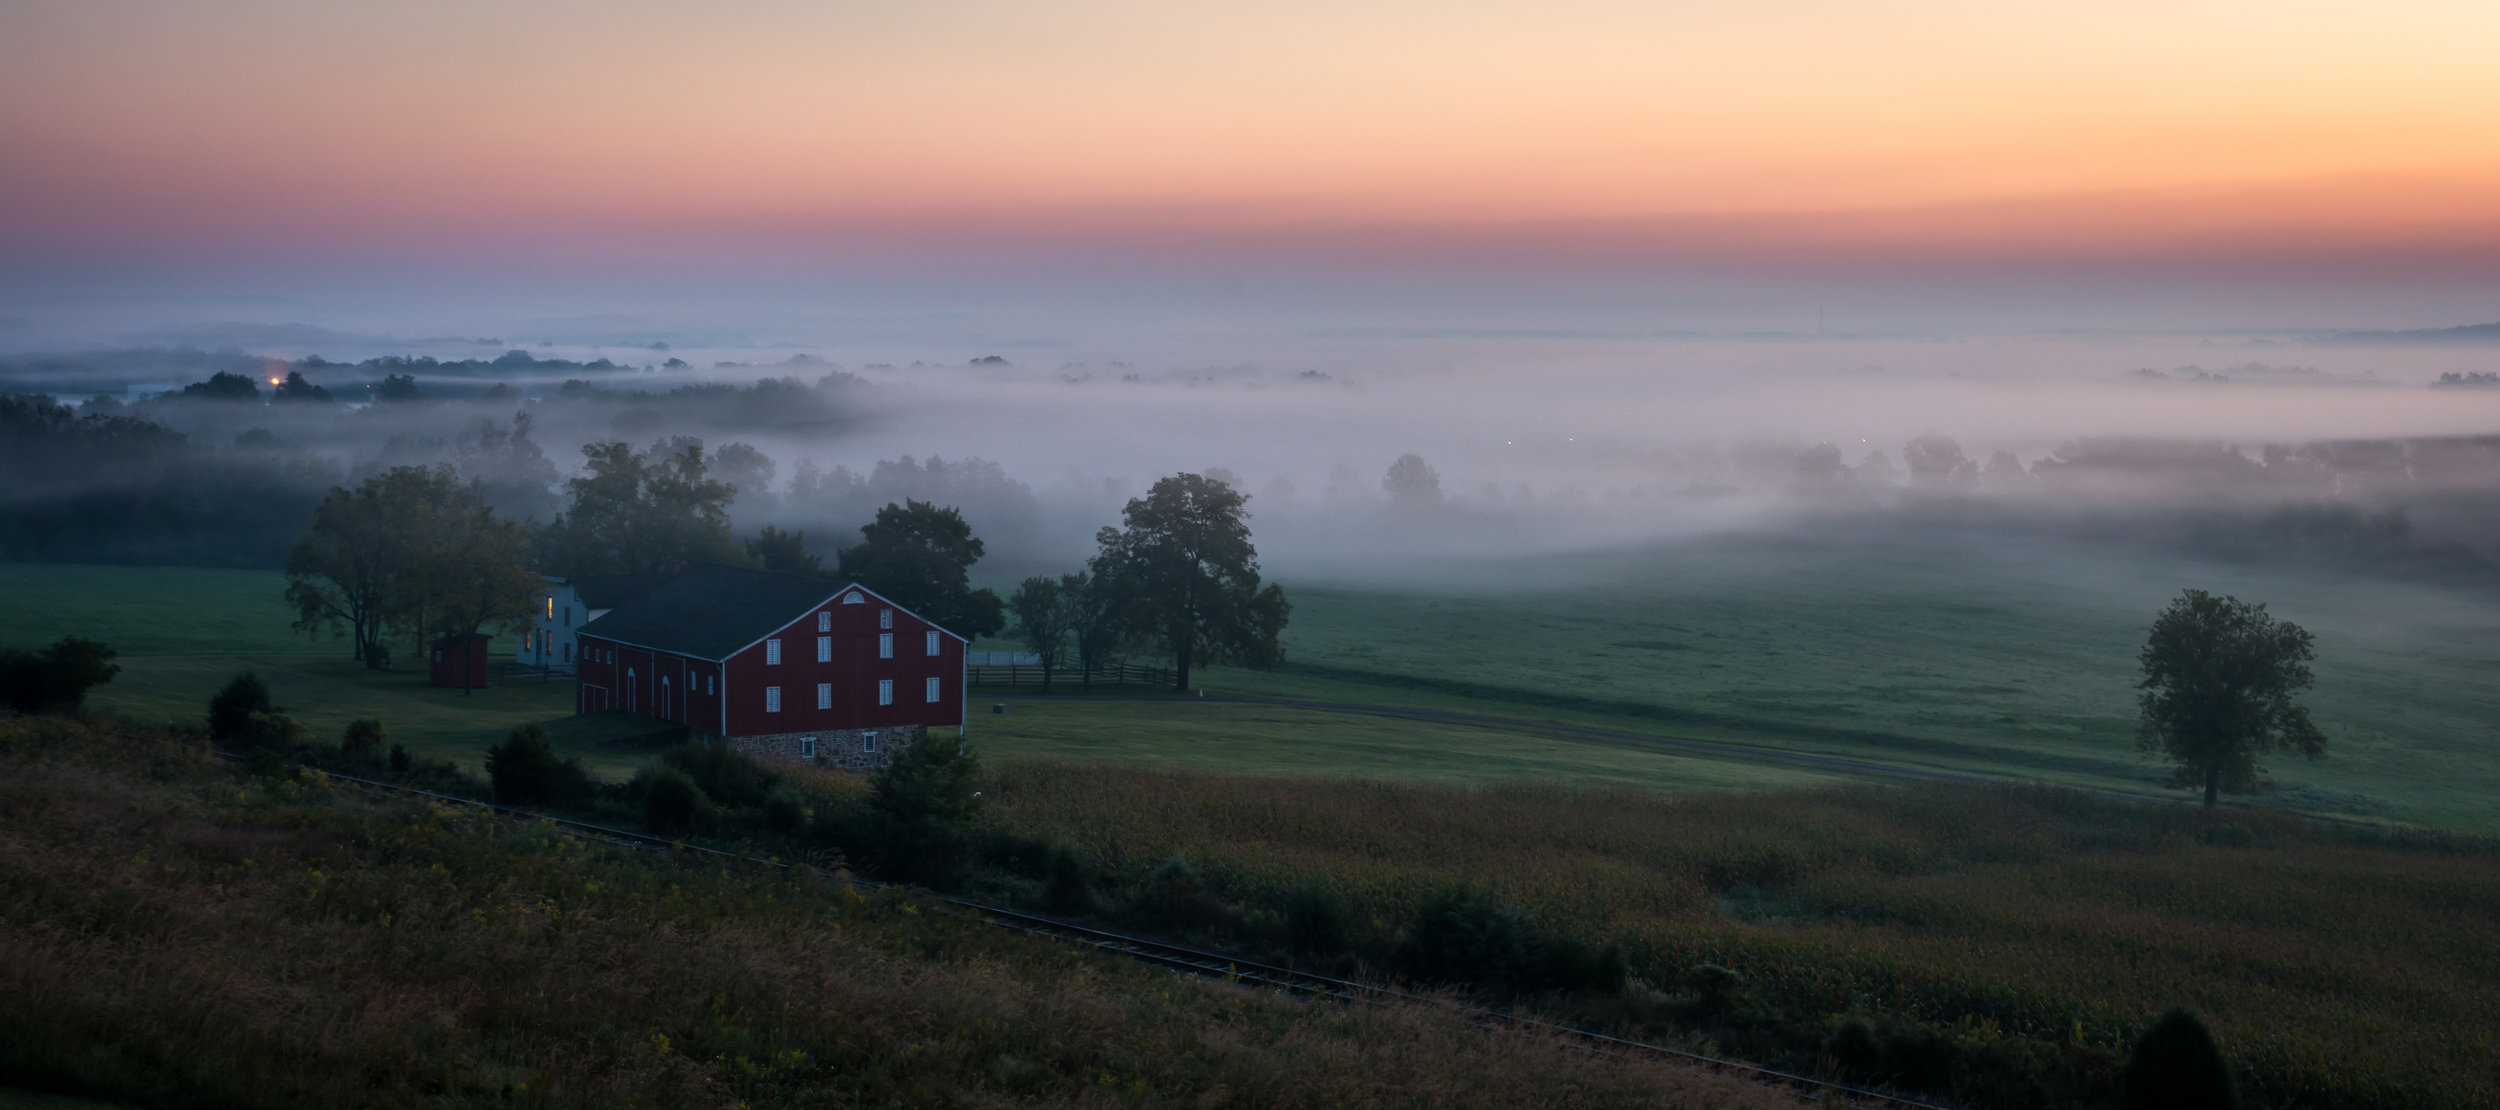 """Gettysburg Dawn - Nikon D7100 - September sunrise from an observation tower on the first day's battlefield. Gettysburg National Military Park. This photograph appeared in a juried show. See the poem """"Waking Up"""" in the Poetry Section."""